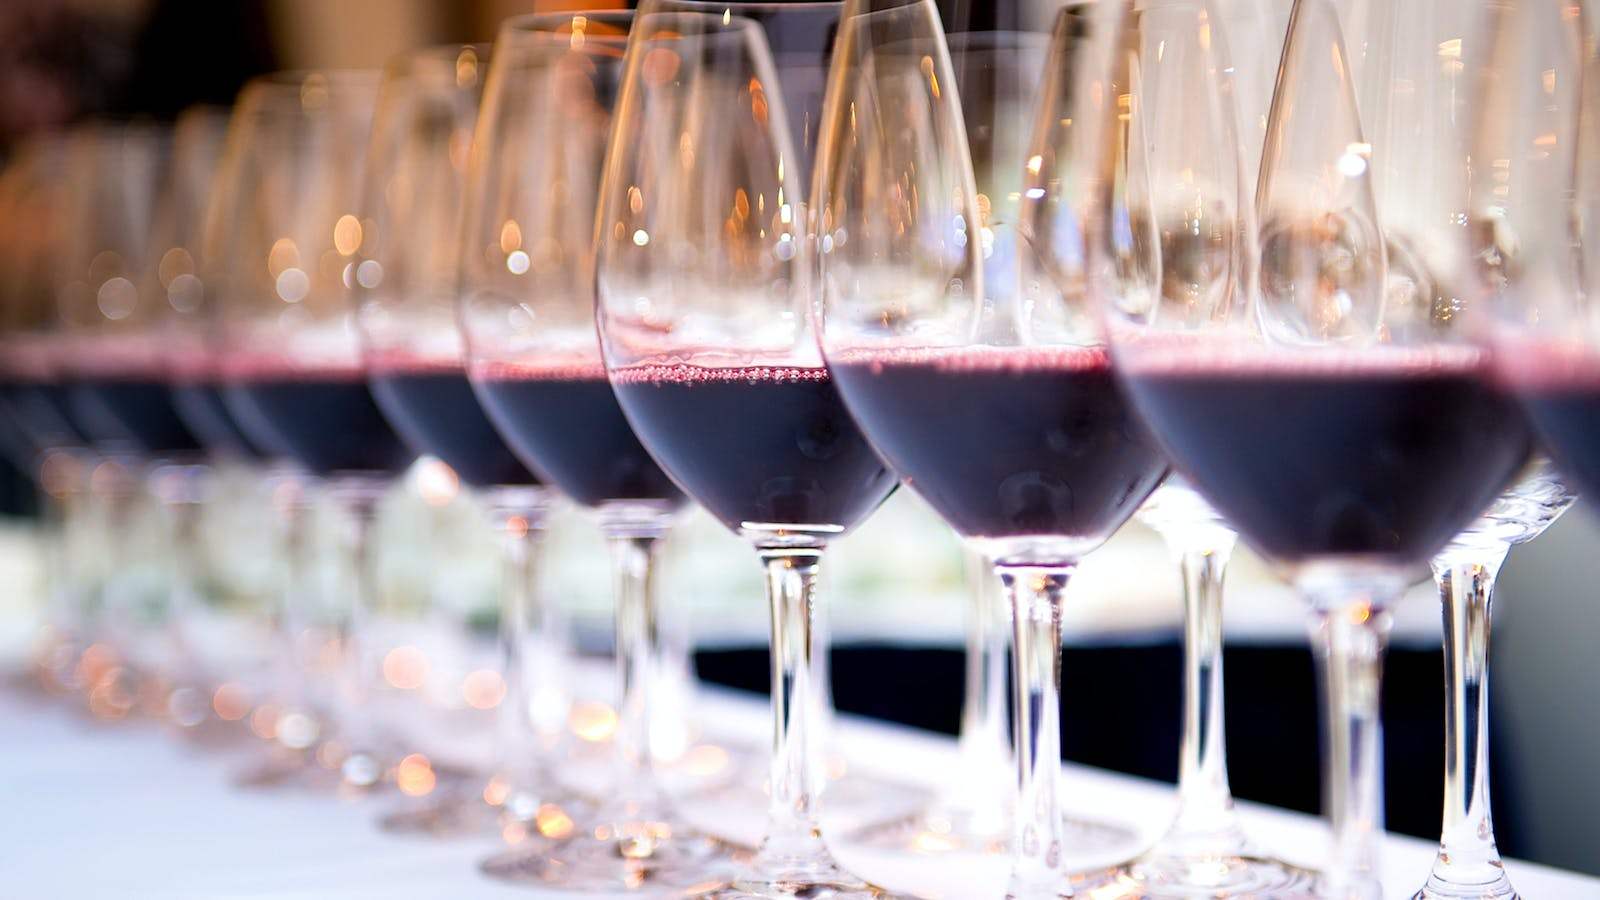 Questions Surrounding Blind-Tasting Exam Leave 23 New Master Sommeliers in Limbo